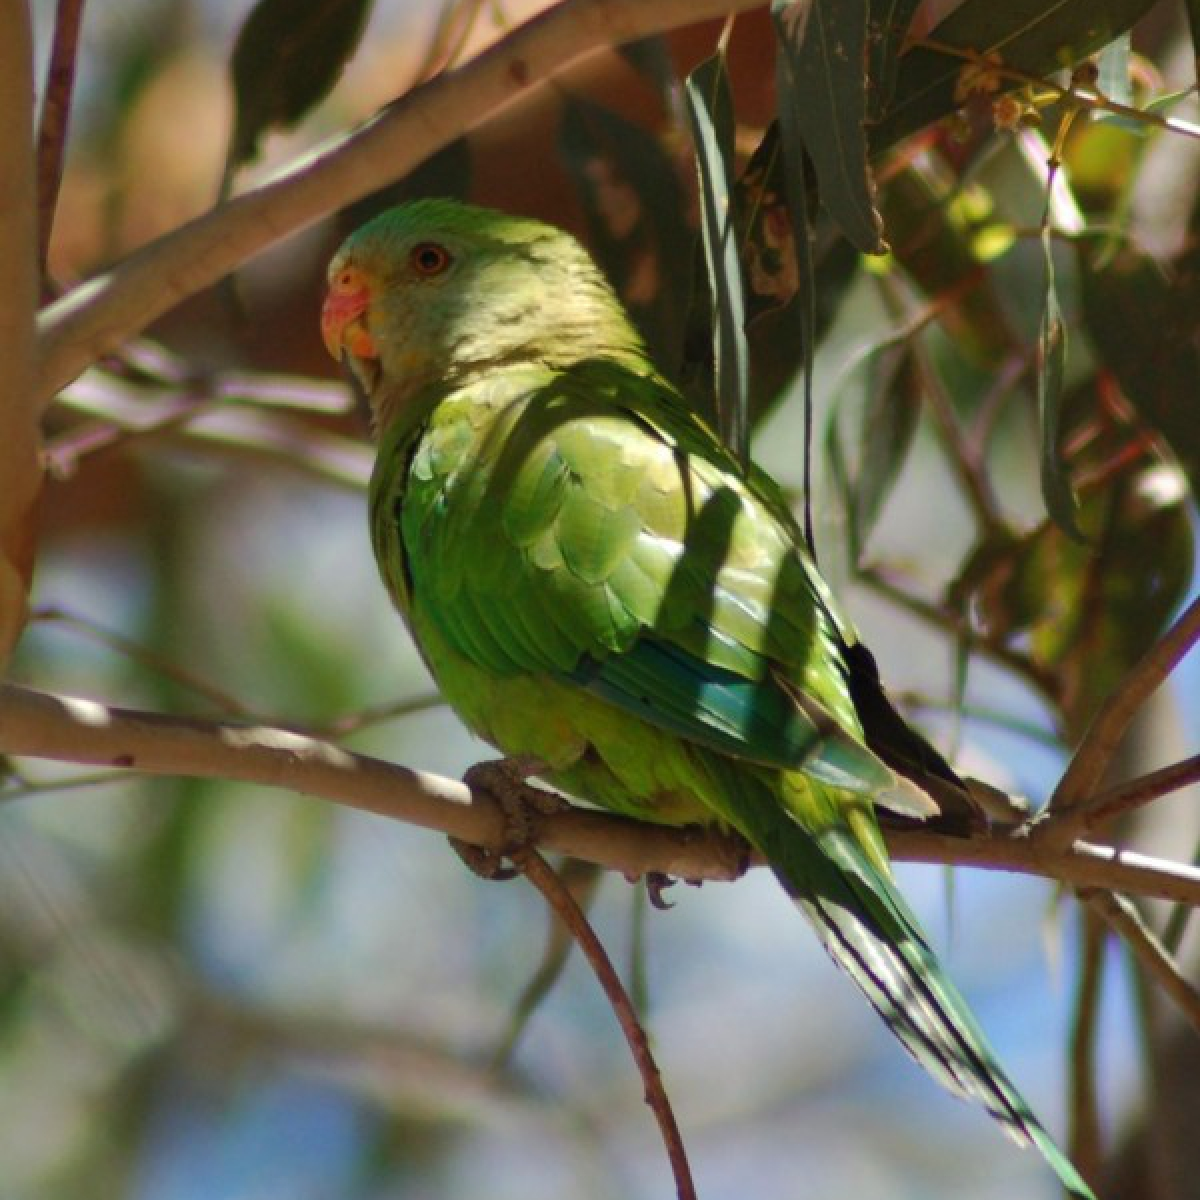 445 Superb Parrot juvenile male